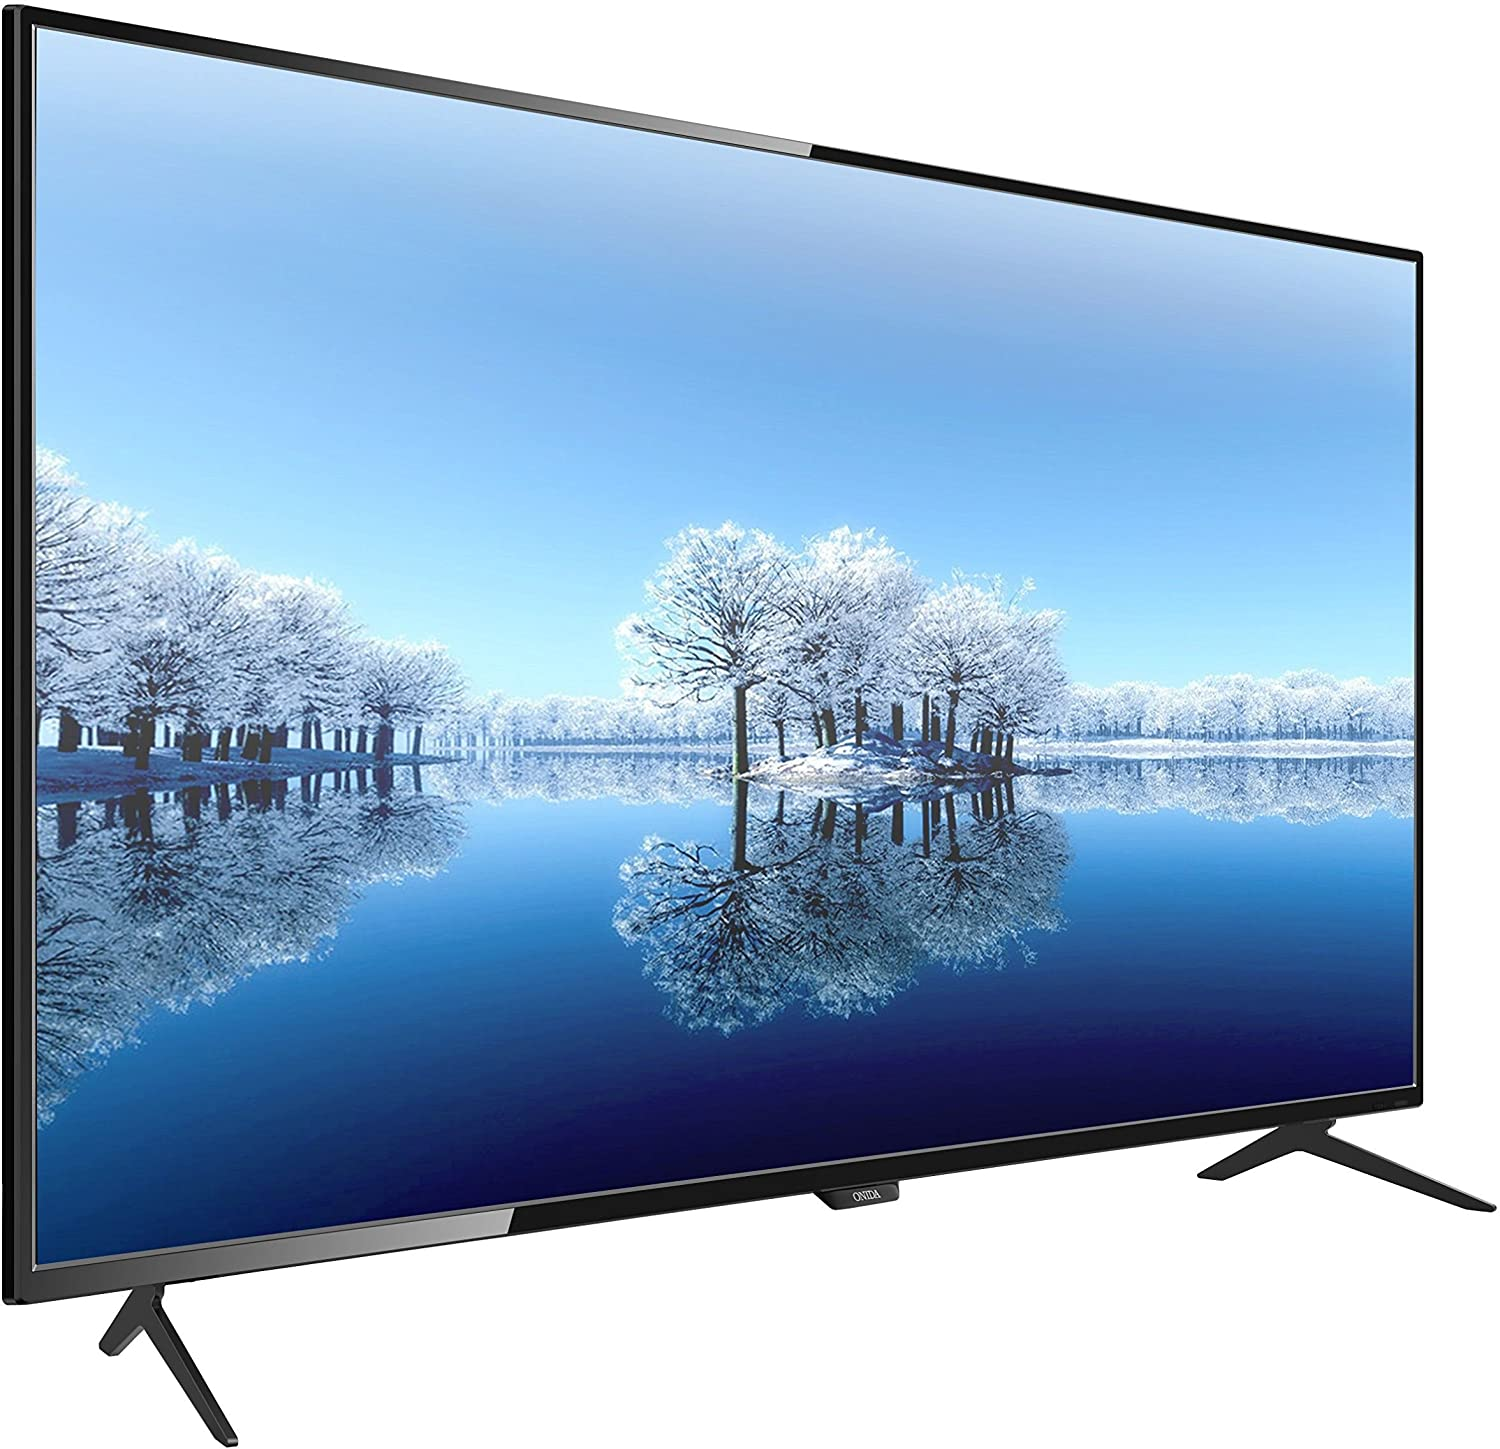 Best 55 inch 4K TVs in India under 60,000 - TCL L55P2MUS Android M 4K UHD LED Smart TV